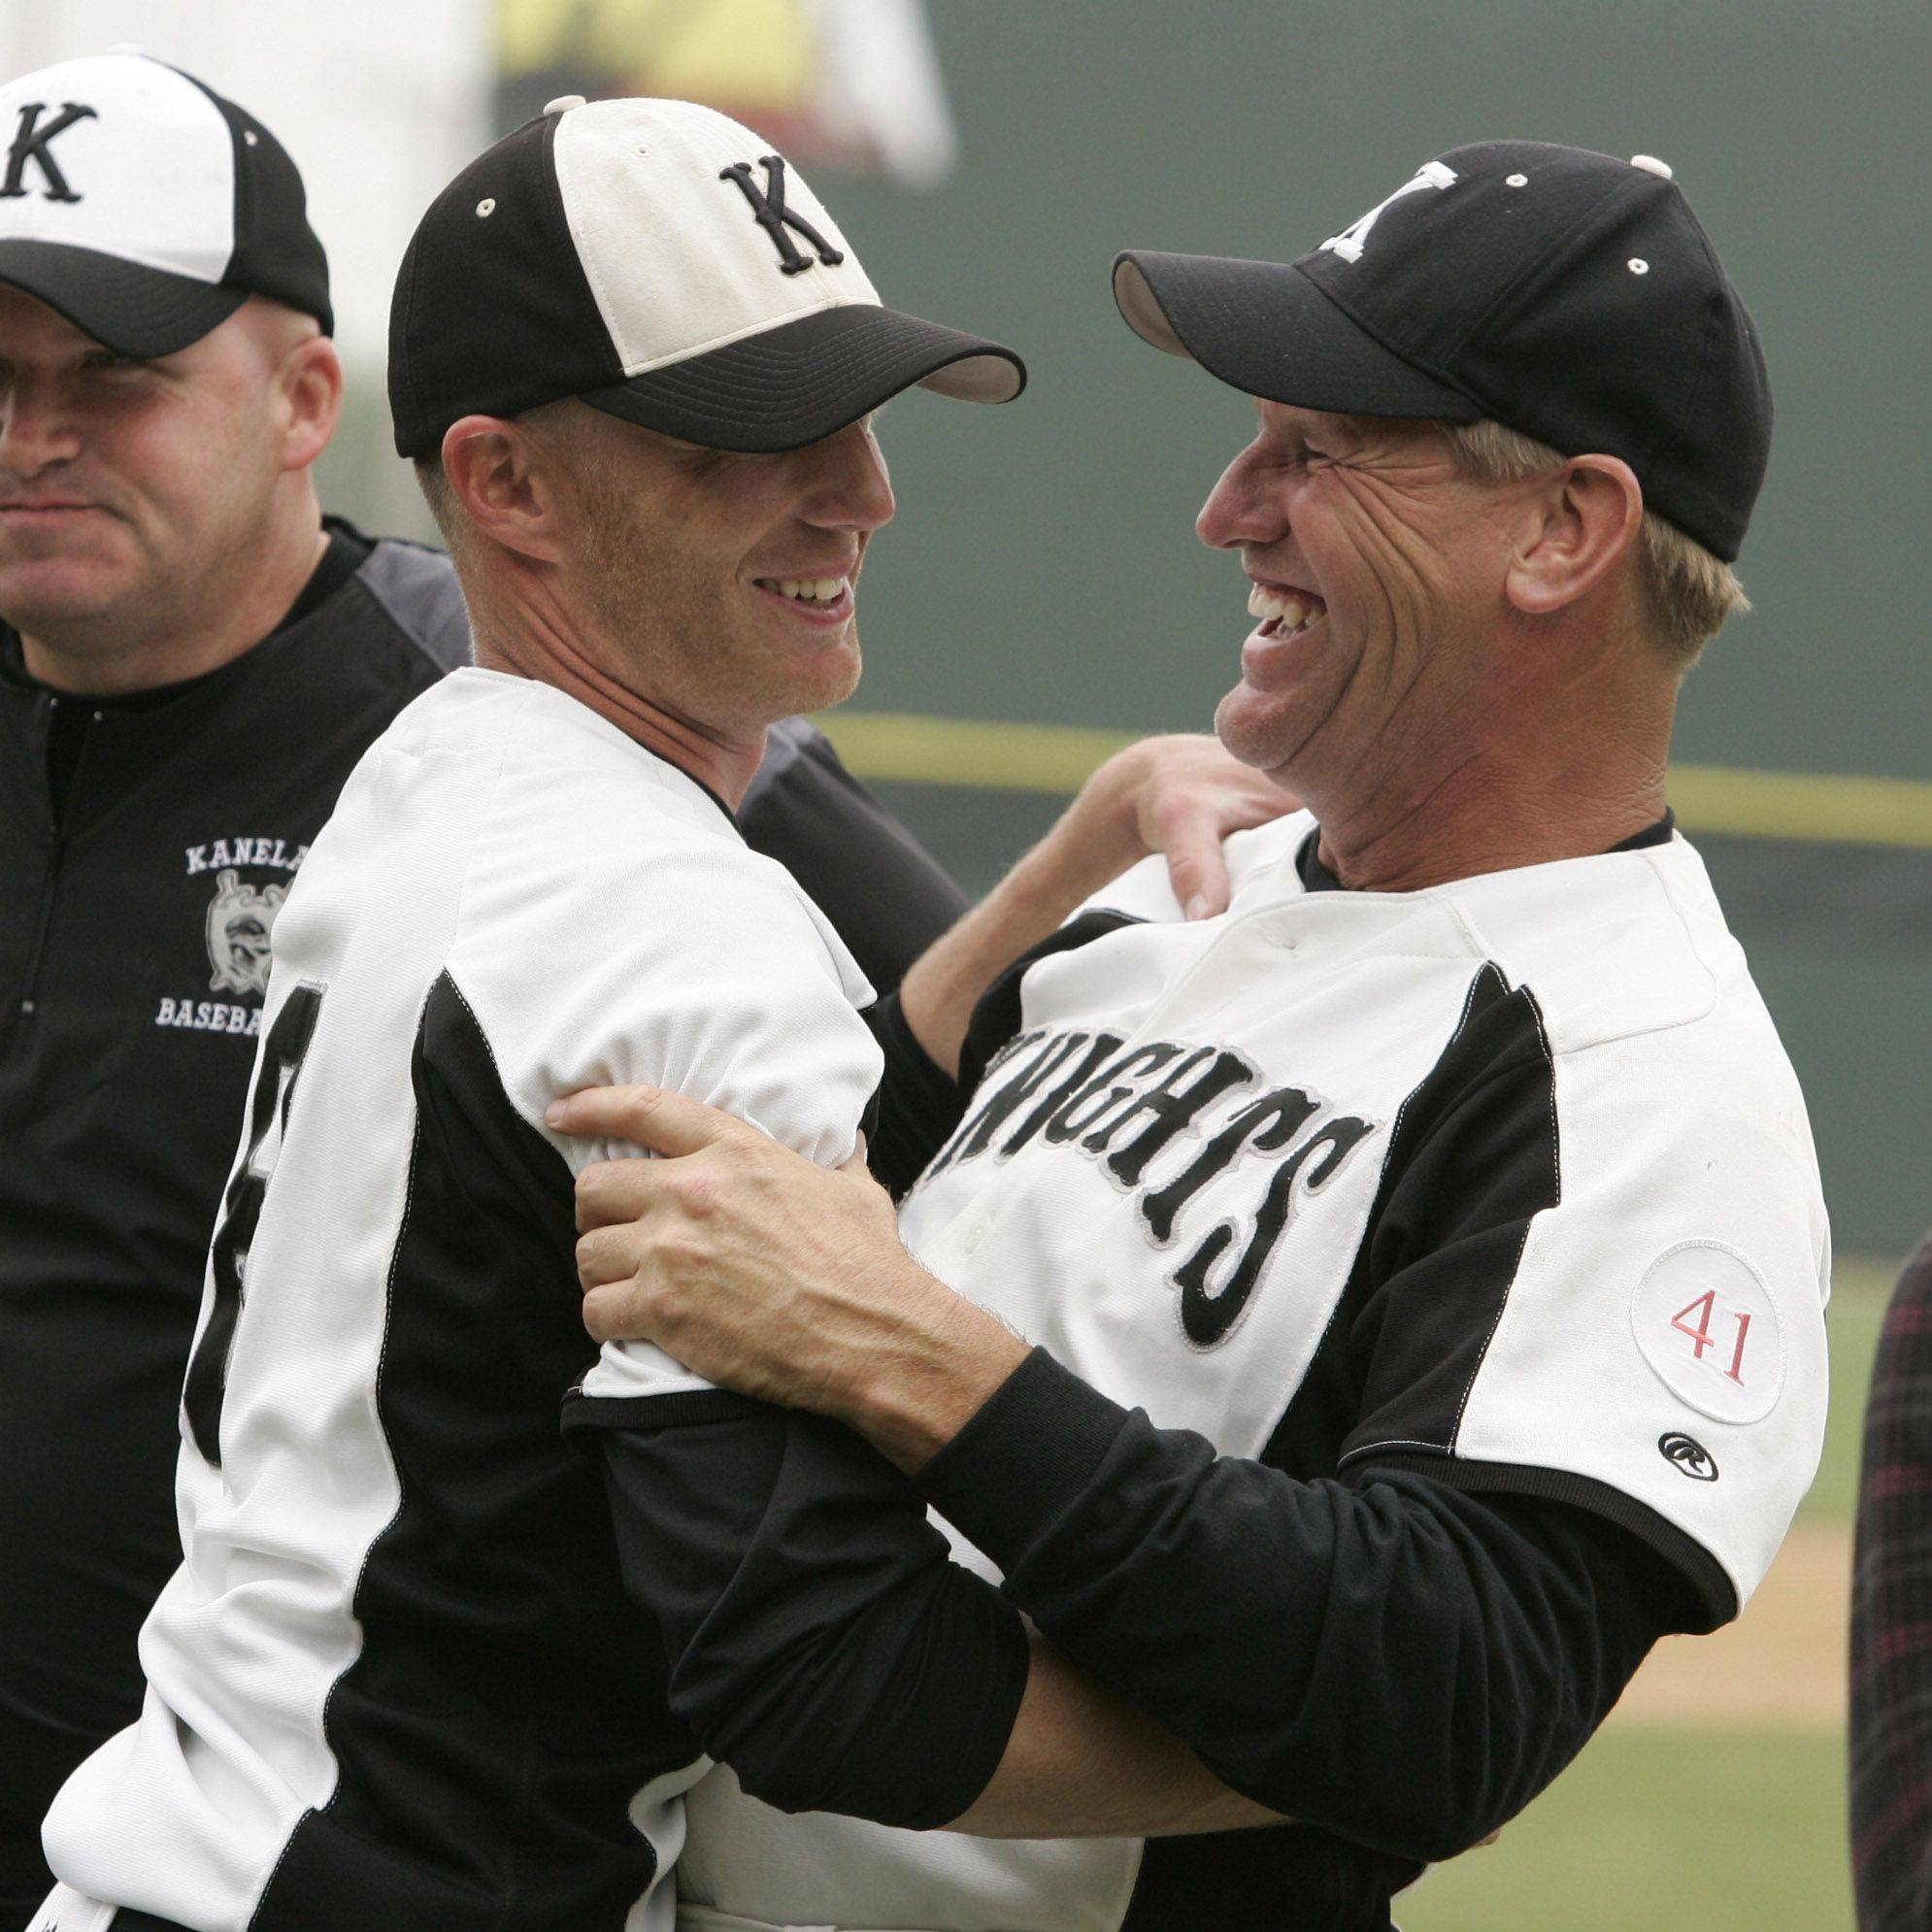 Kaneland coach Brian Aversa, left, and first base coach Jim Smedley hug after defeating Oak Forest boys during the high school baseball game Saturday in the Class 3A state finals at Silver Cross Field in Joliet. Kaneland defeated Oak Forest 11-3 to win the state championship.